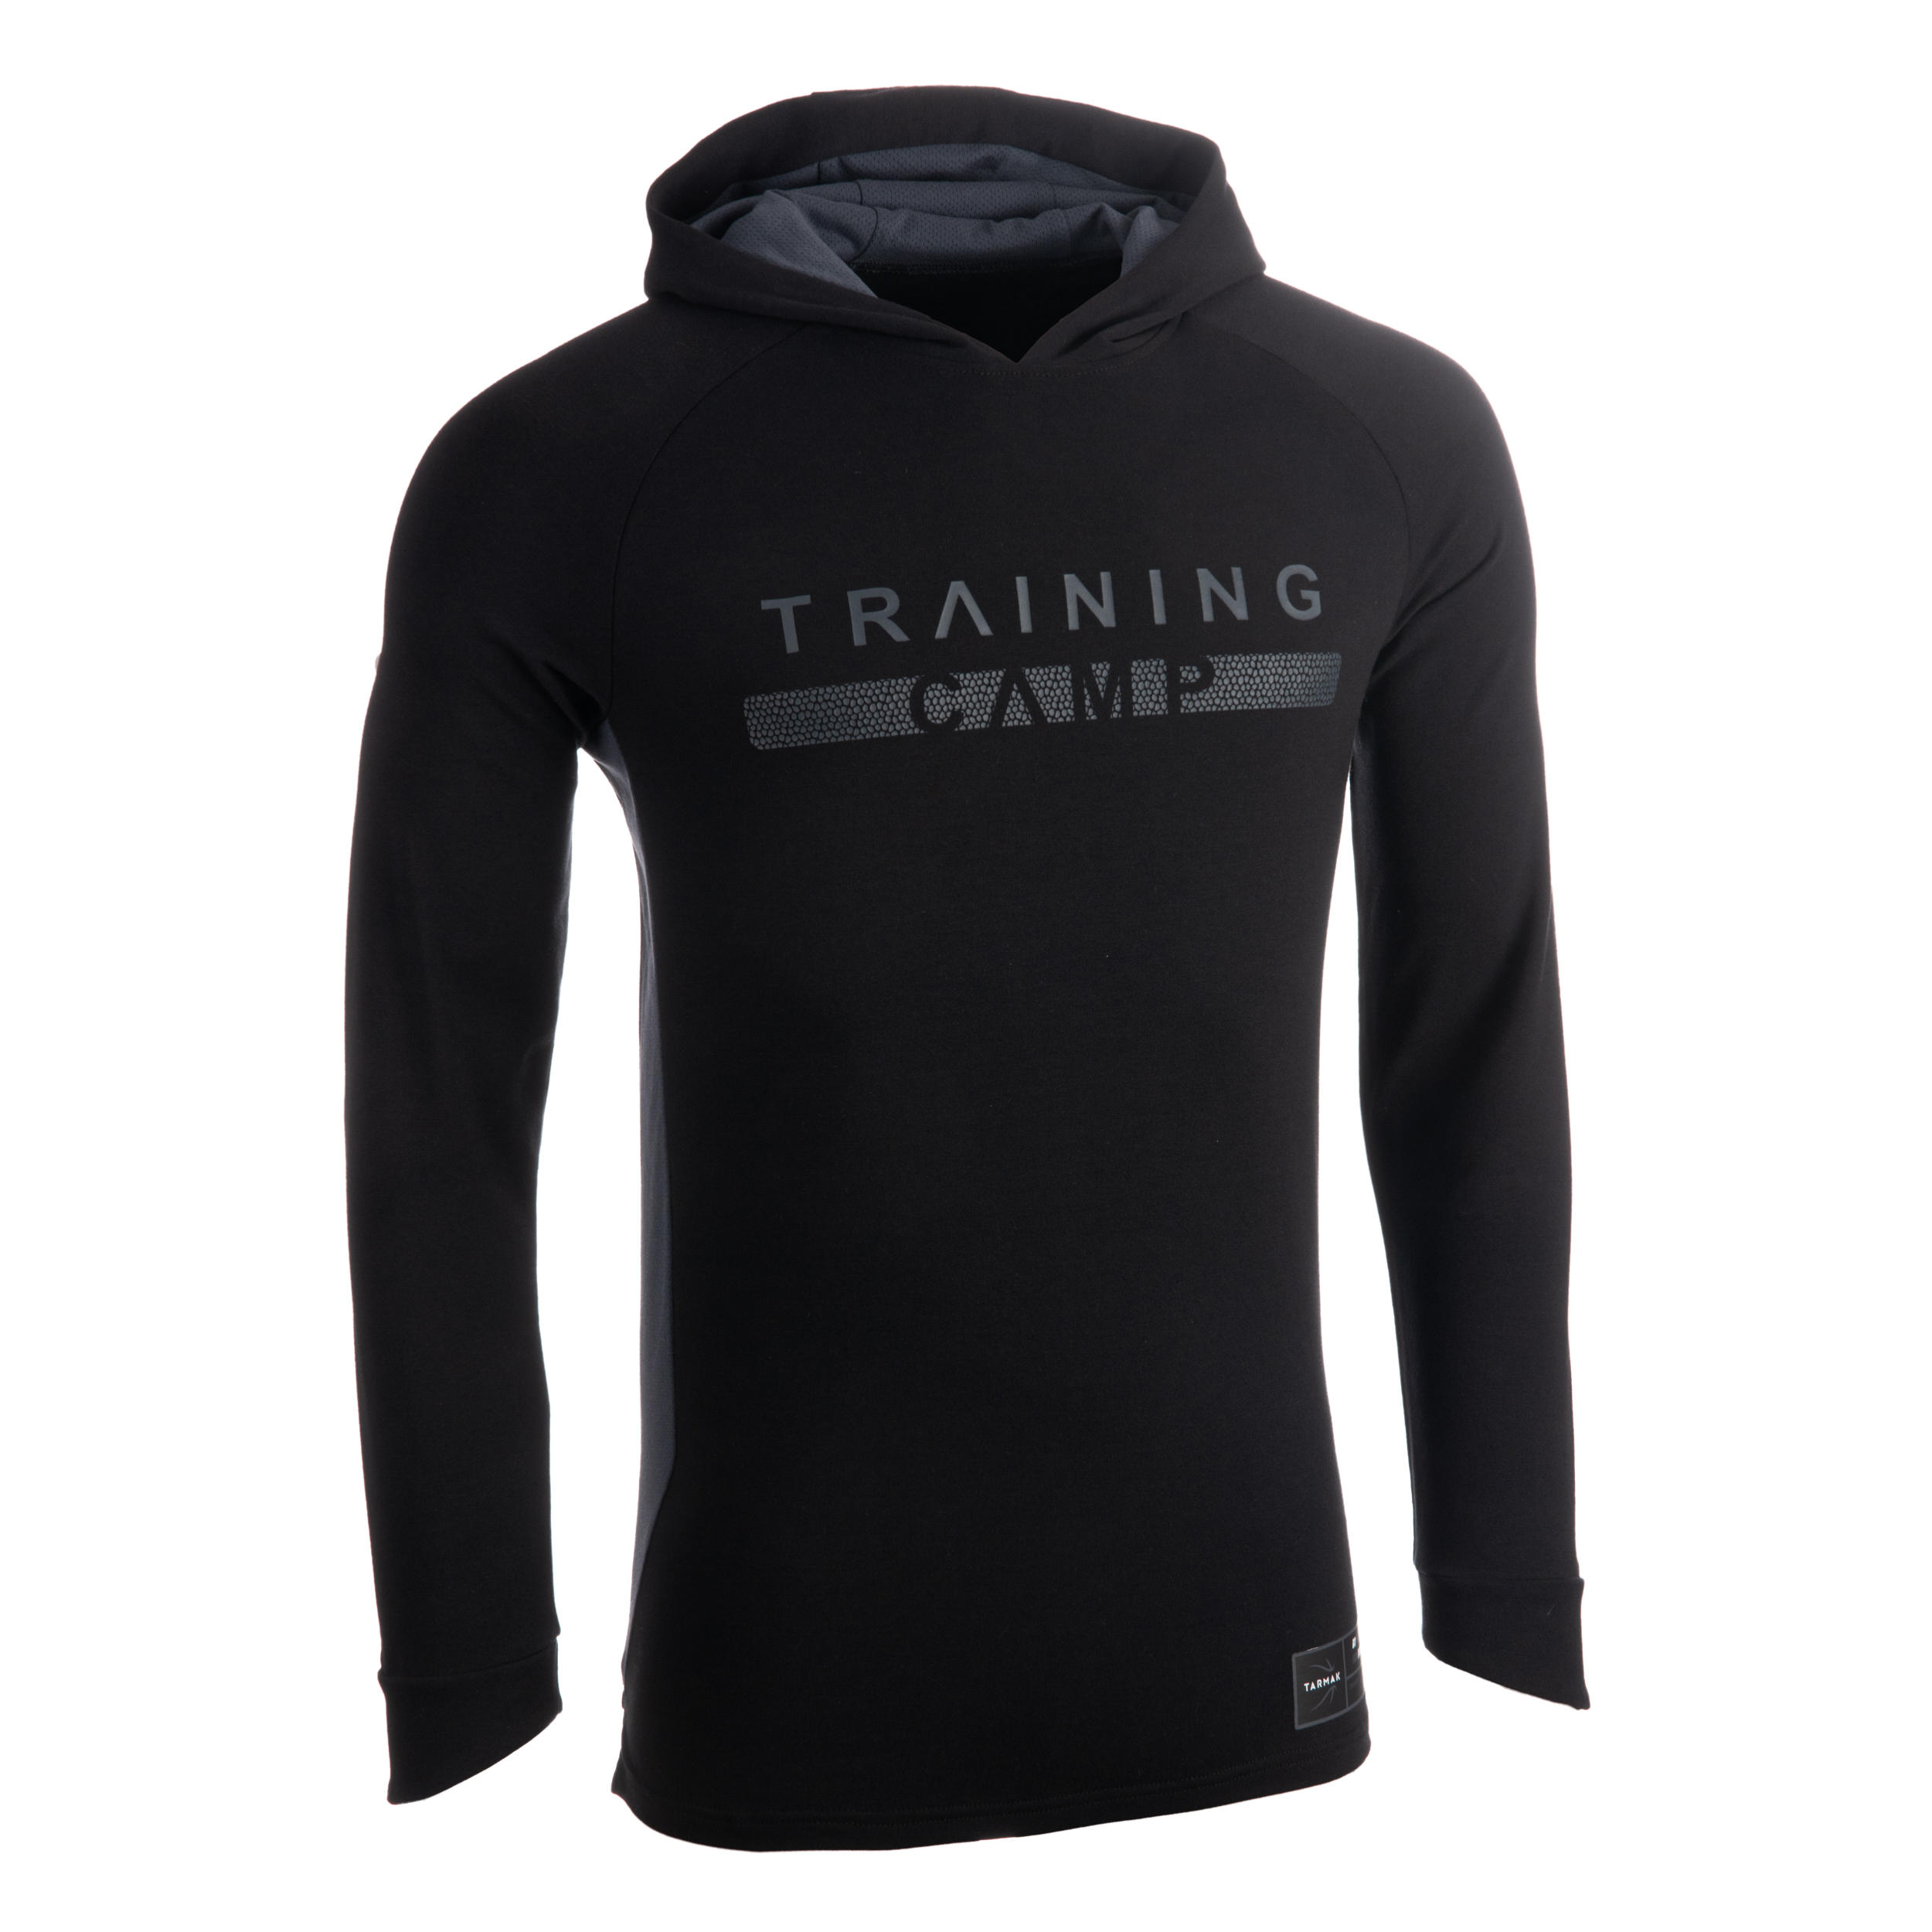 Hanorac Shooting Shirt TS500 Tarmak Promoție